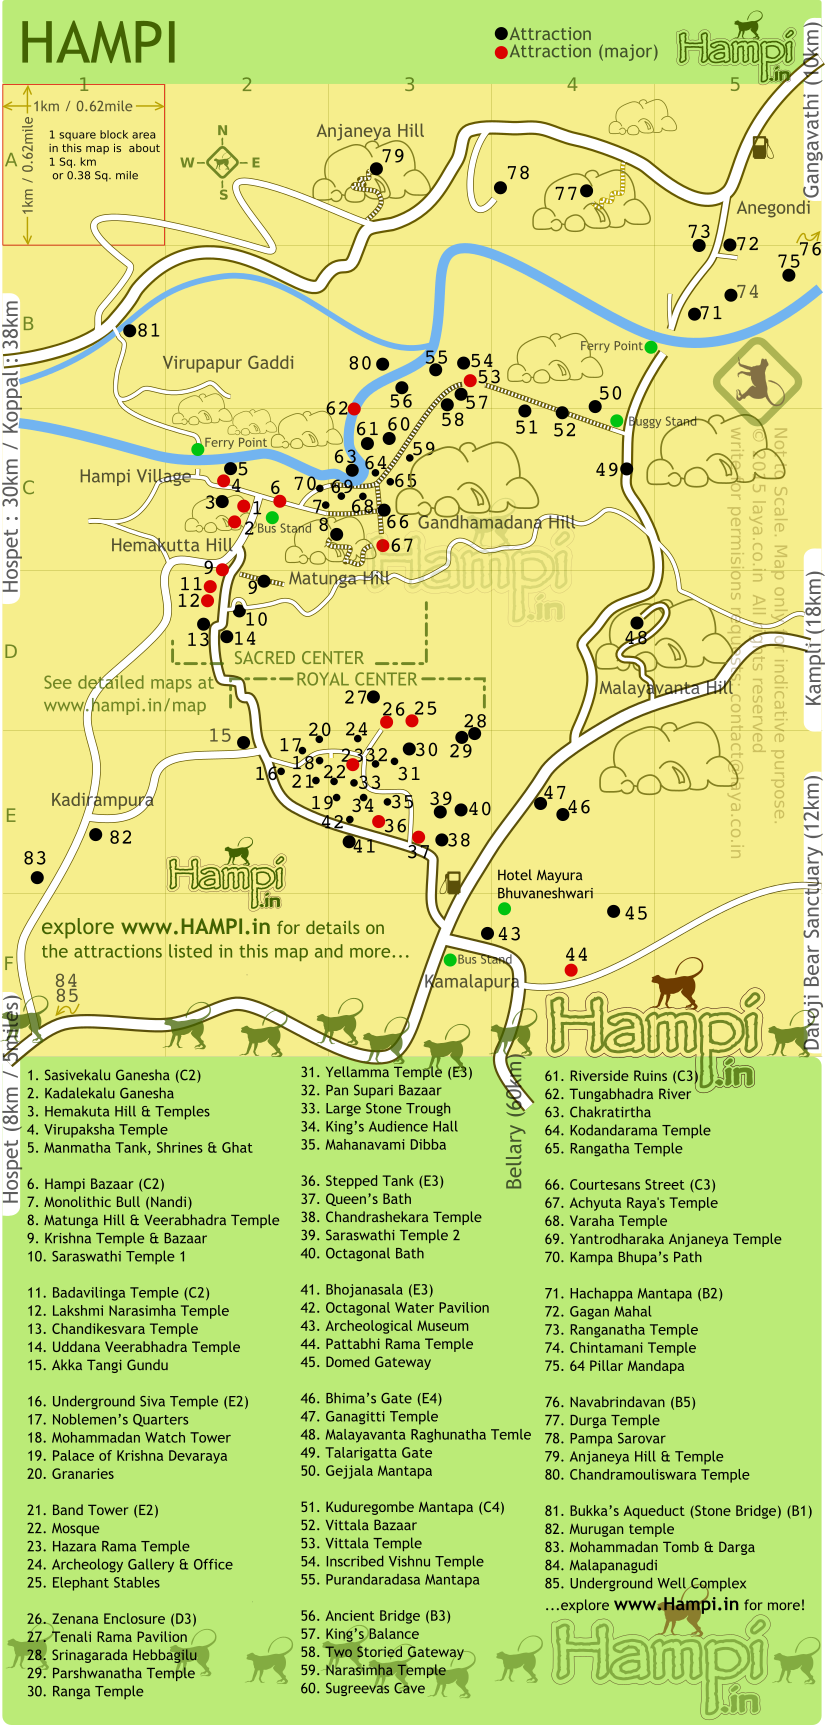 Map show the location of various monuments in Hampi